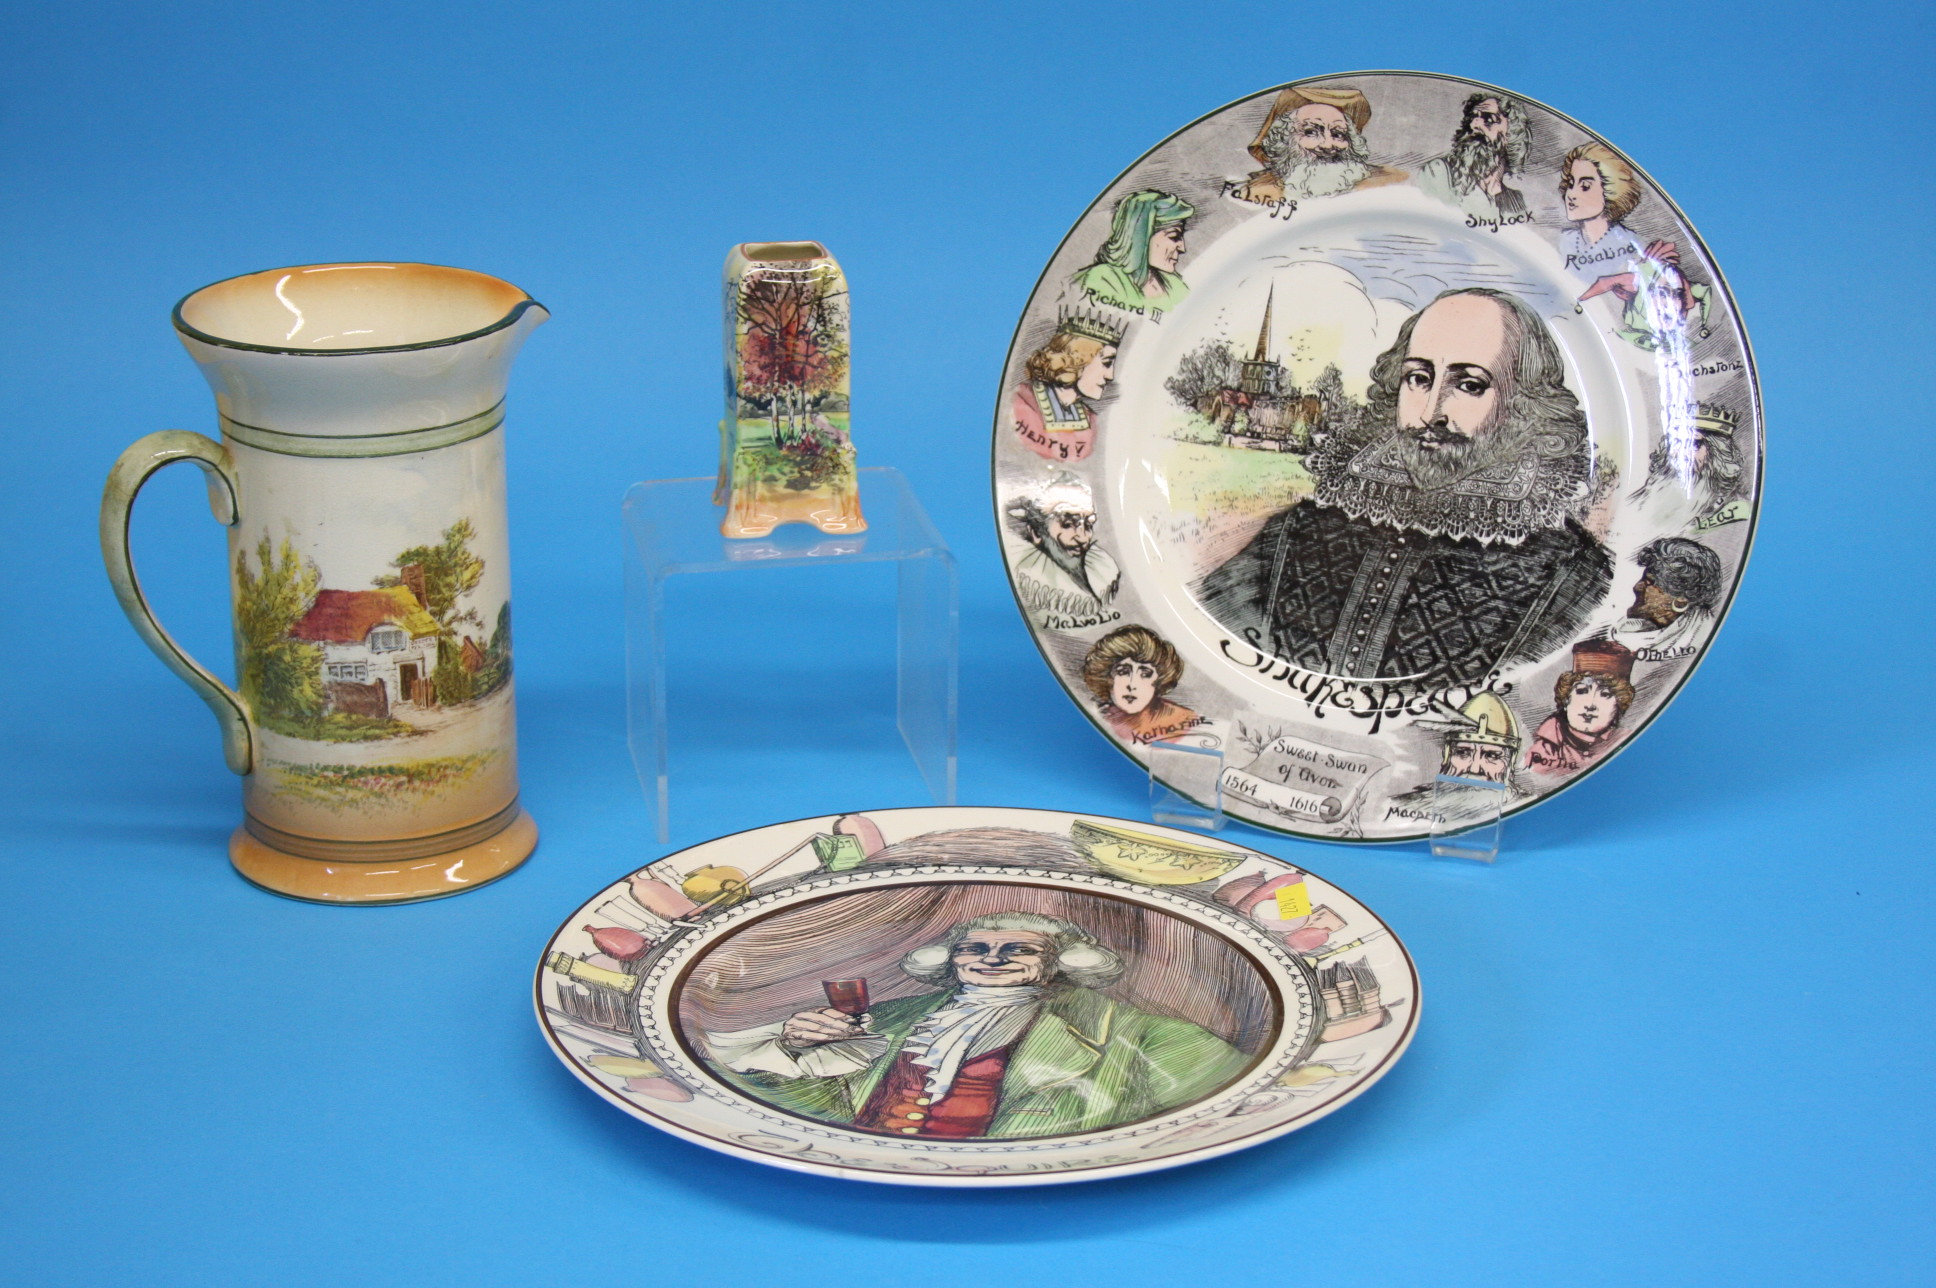 Two Royal Doulton plates 'The Squire' and 'Shakesp